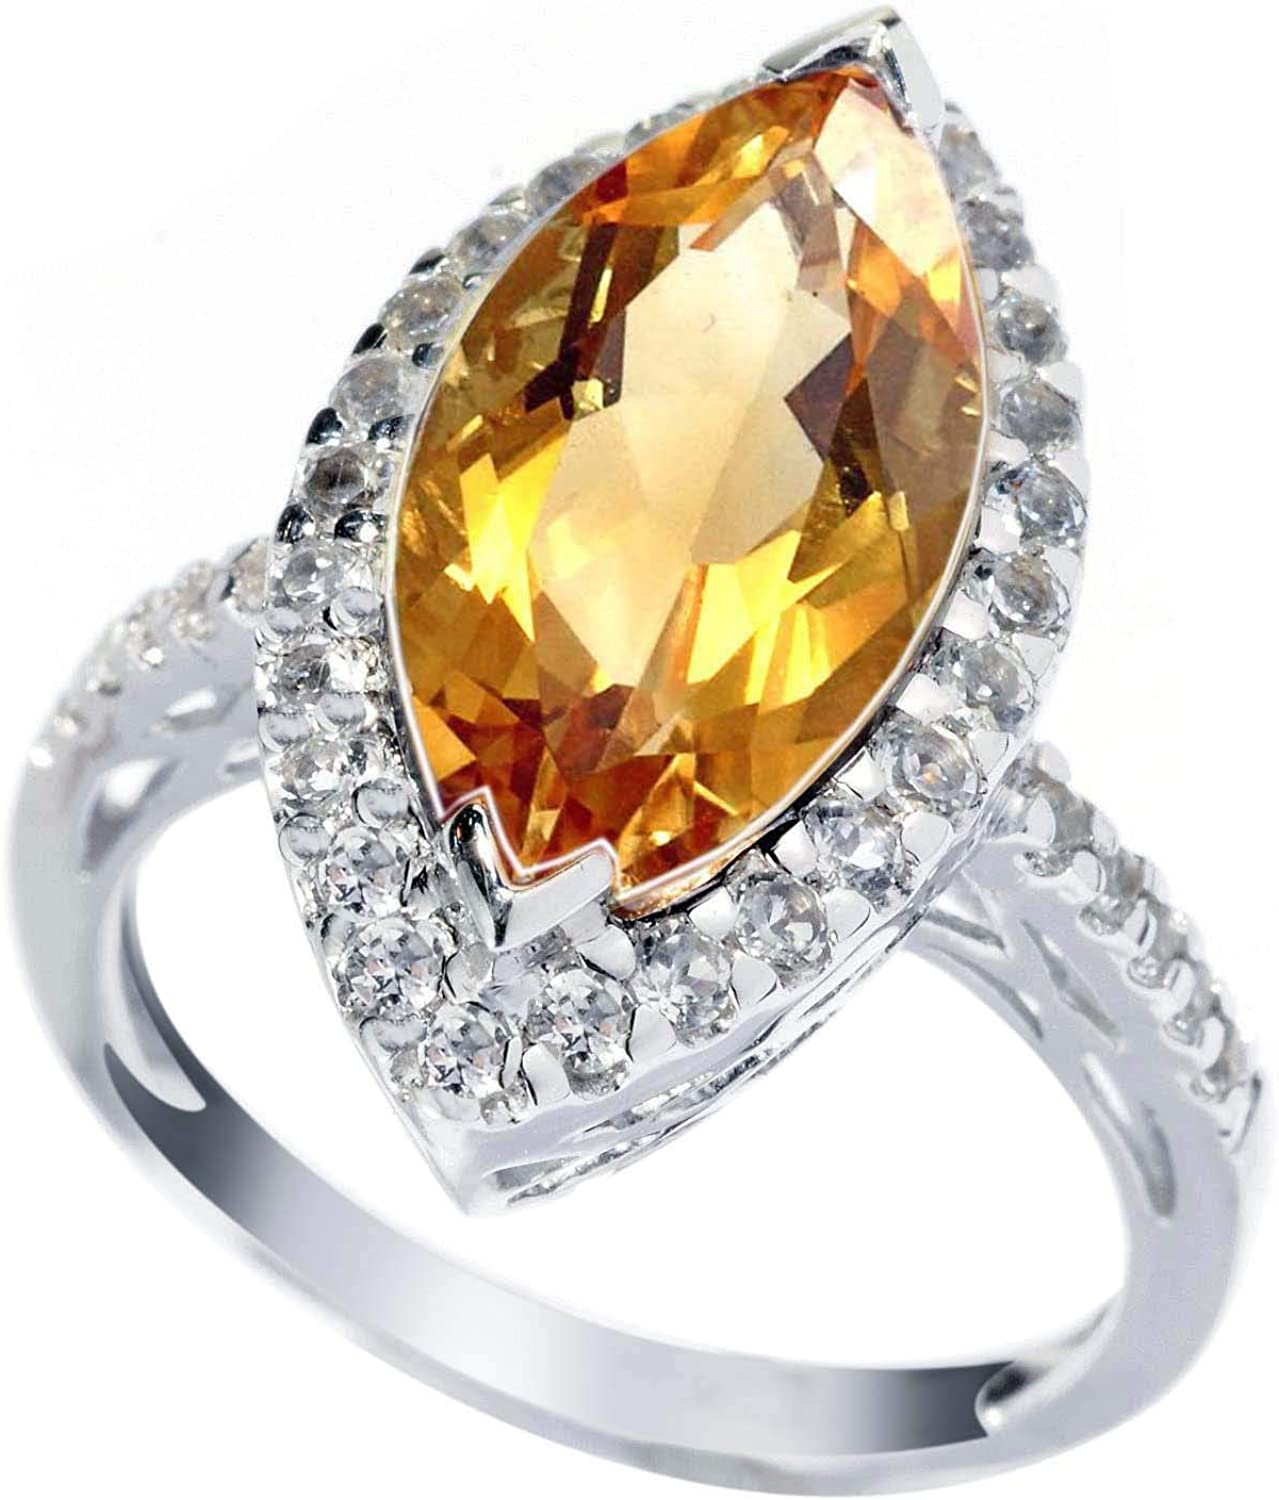 Citrine and white Topaz,Sterling,925 Sterling silver Ring,Natural Gemstone Ring,citrine topaz Jewelry,Citrine Topaz Ring,Woman Fashion